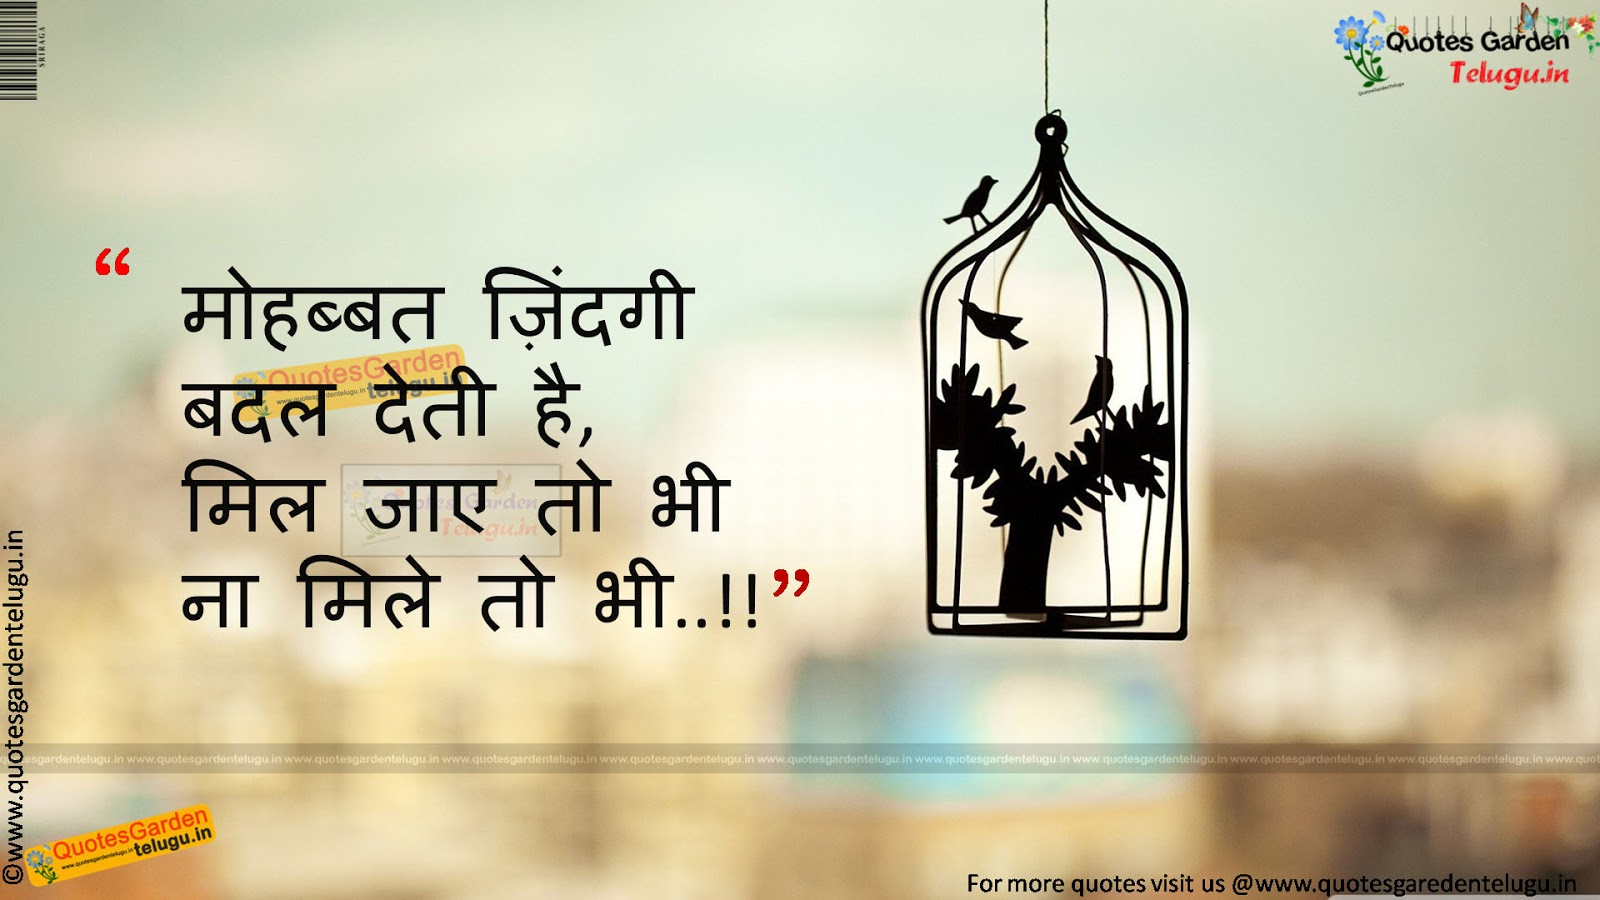 best hindi love quotes love shayari quotes garden telugu